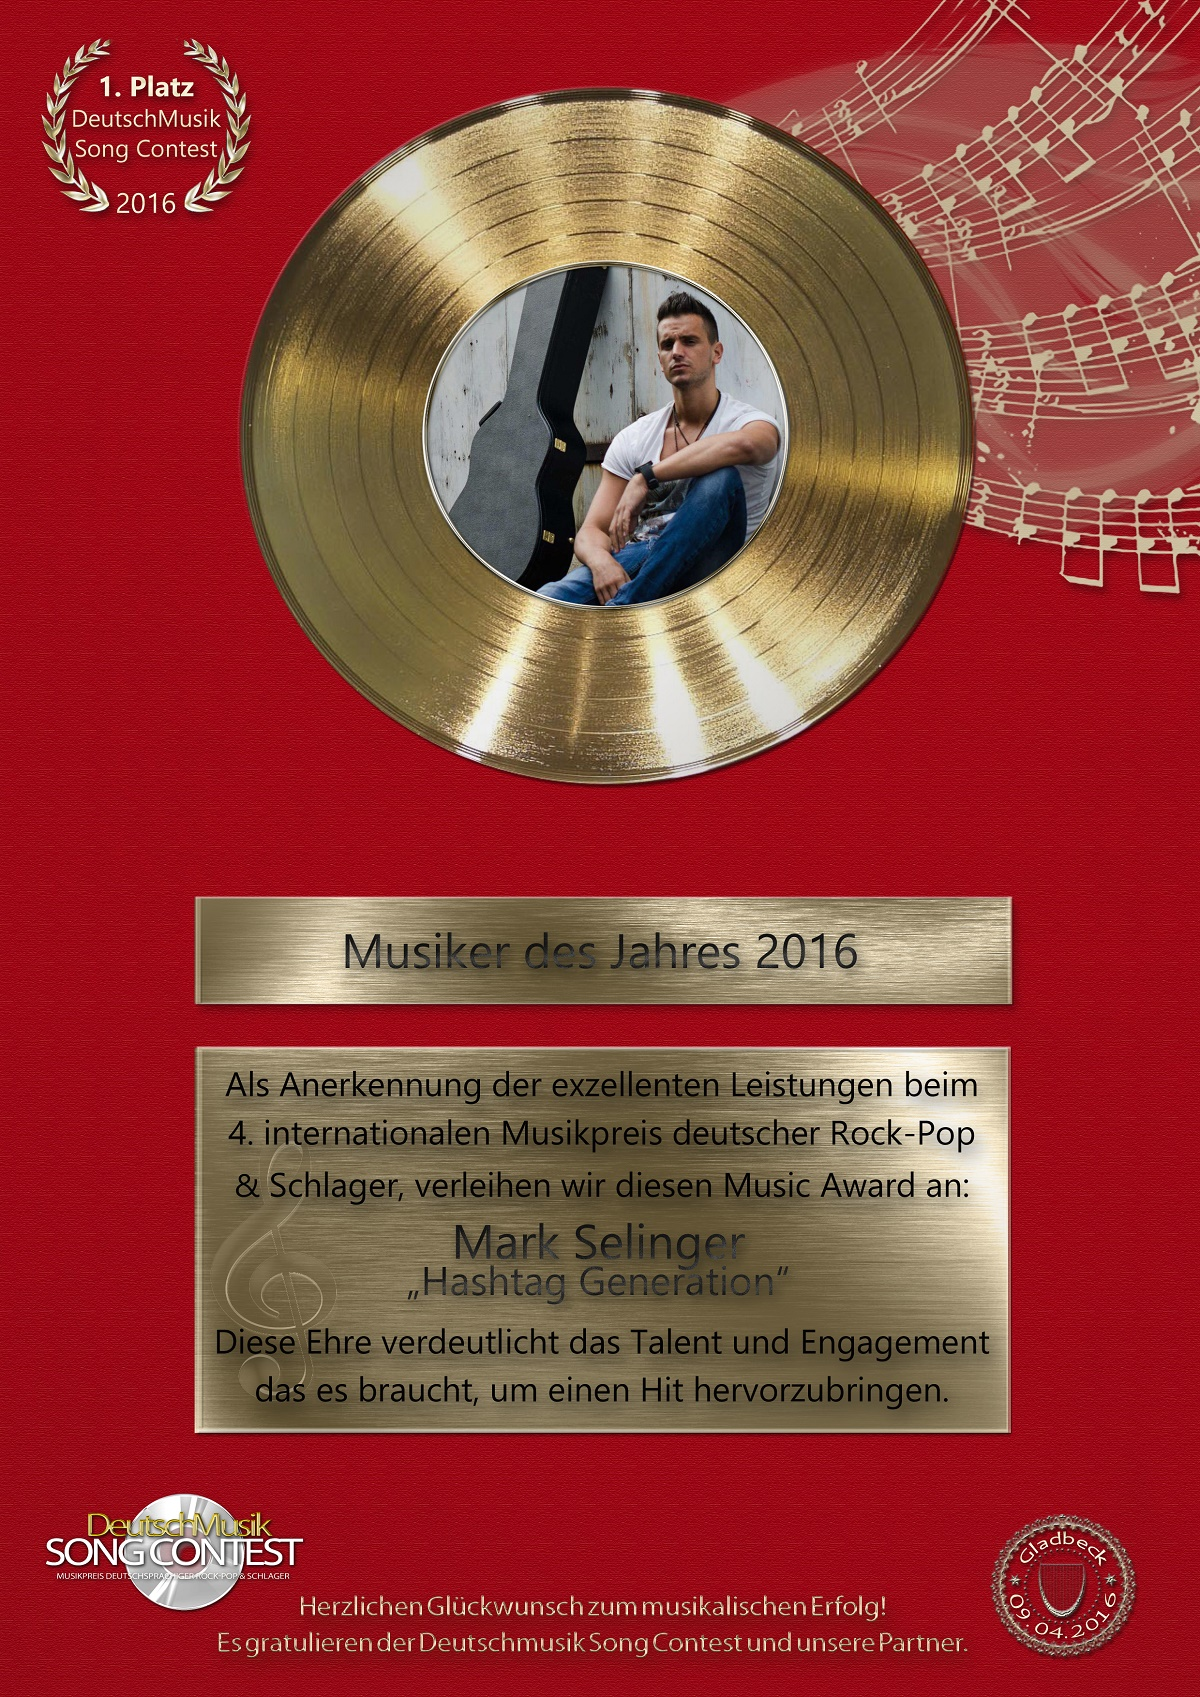 gold-award-deutschmusik-song-contest-2016-mark-selinger